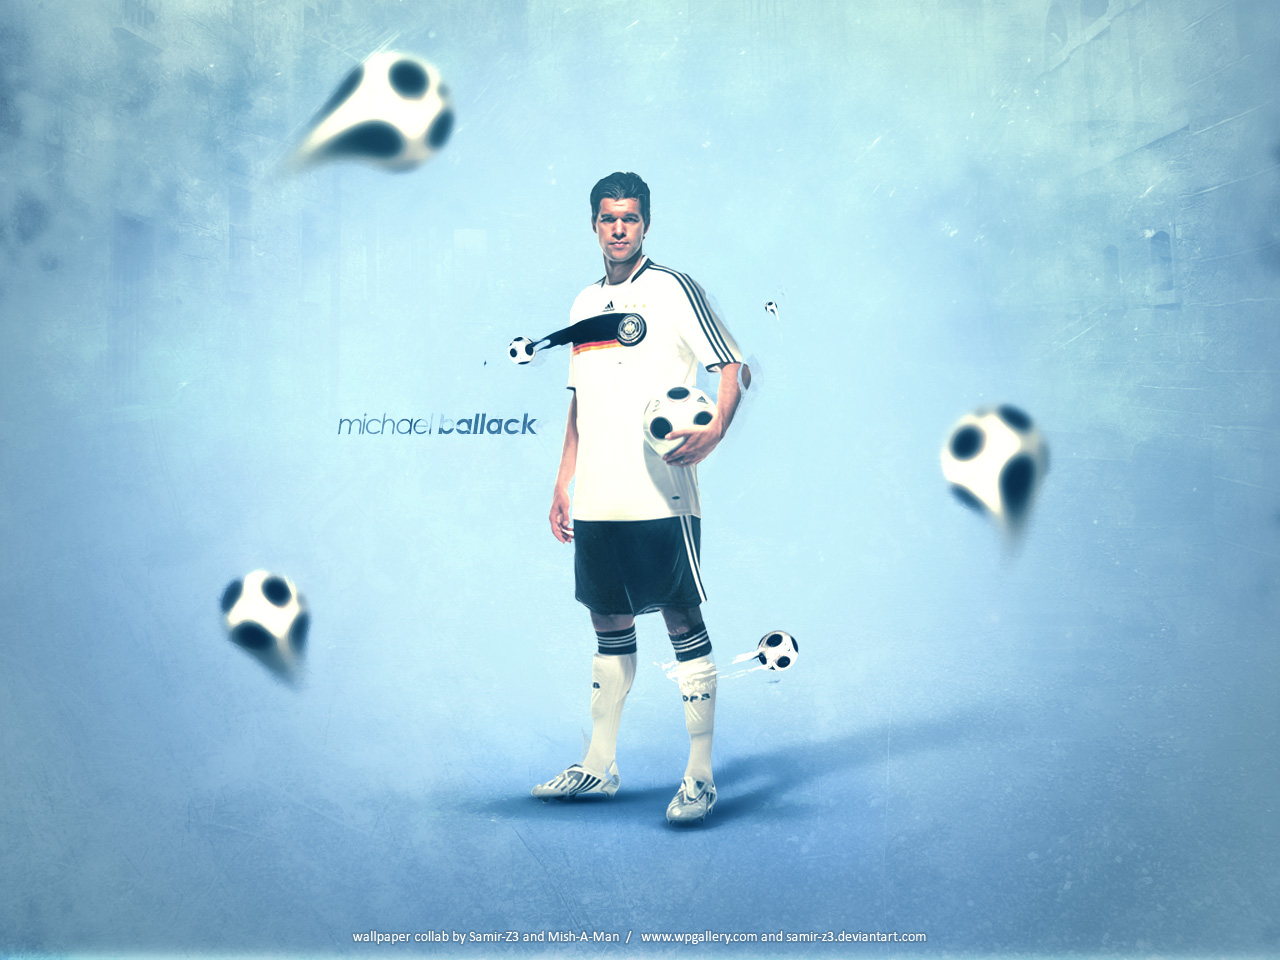 michael-ballack-wallpaper-for-1280x960-39-39 jpgMichael Ballack Wallpaper